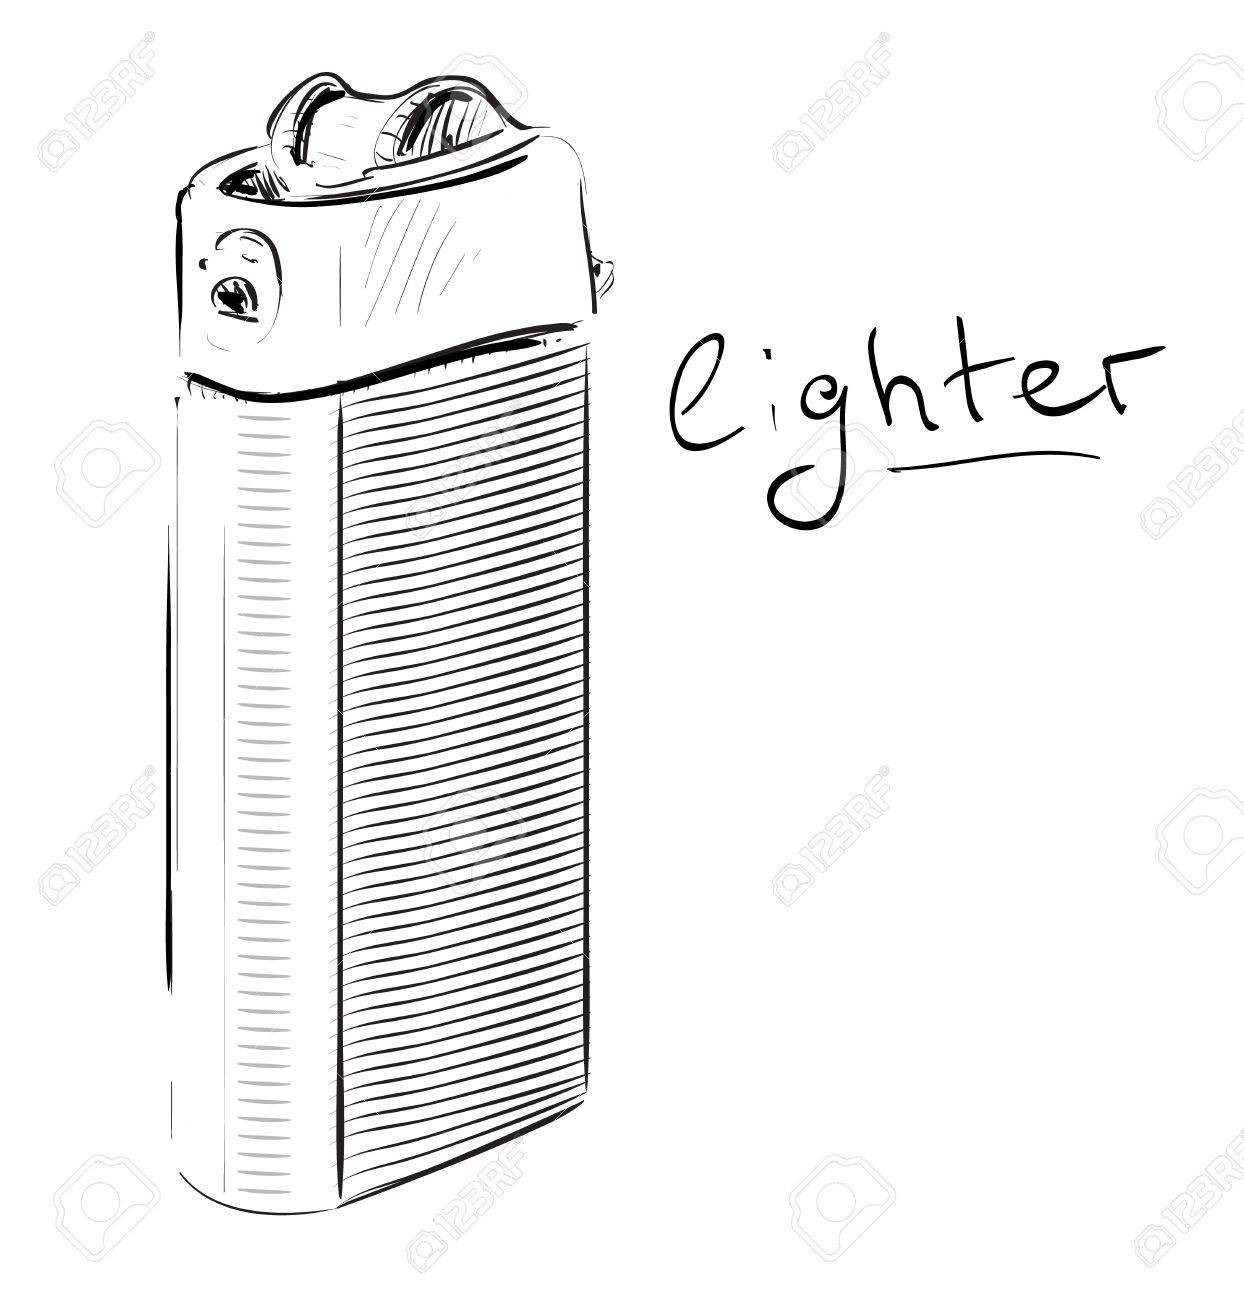 Lighter cartoon sketch vector illustration Stock Vector - 18269490